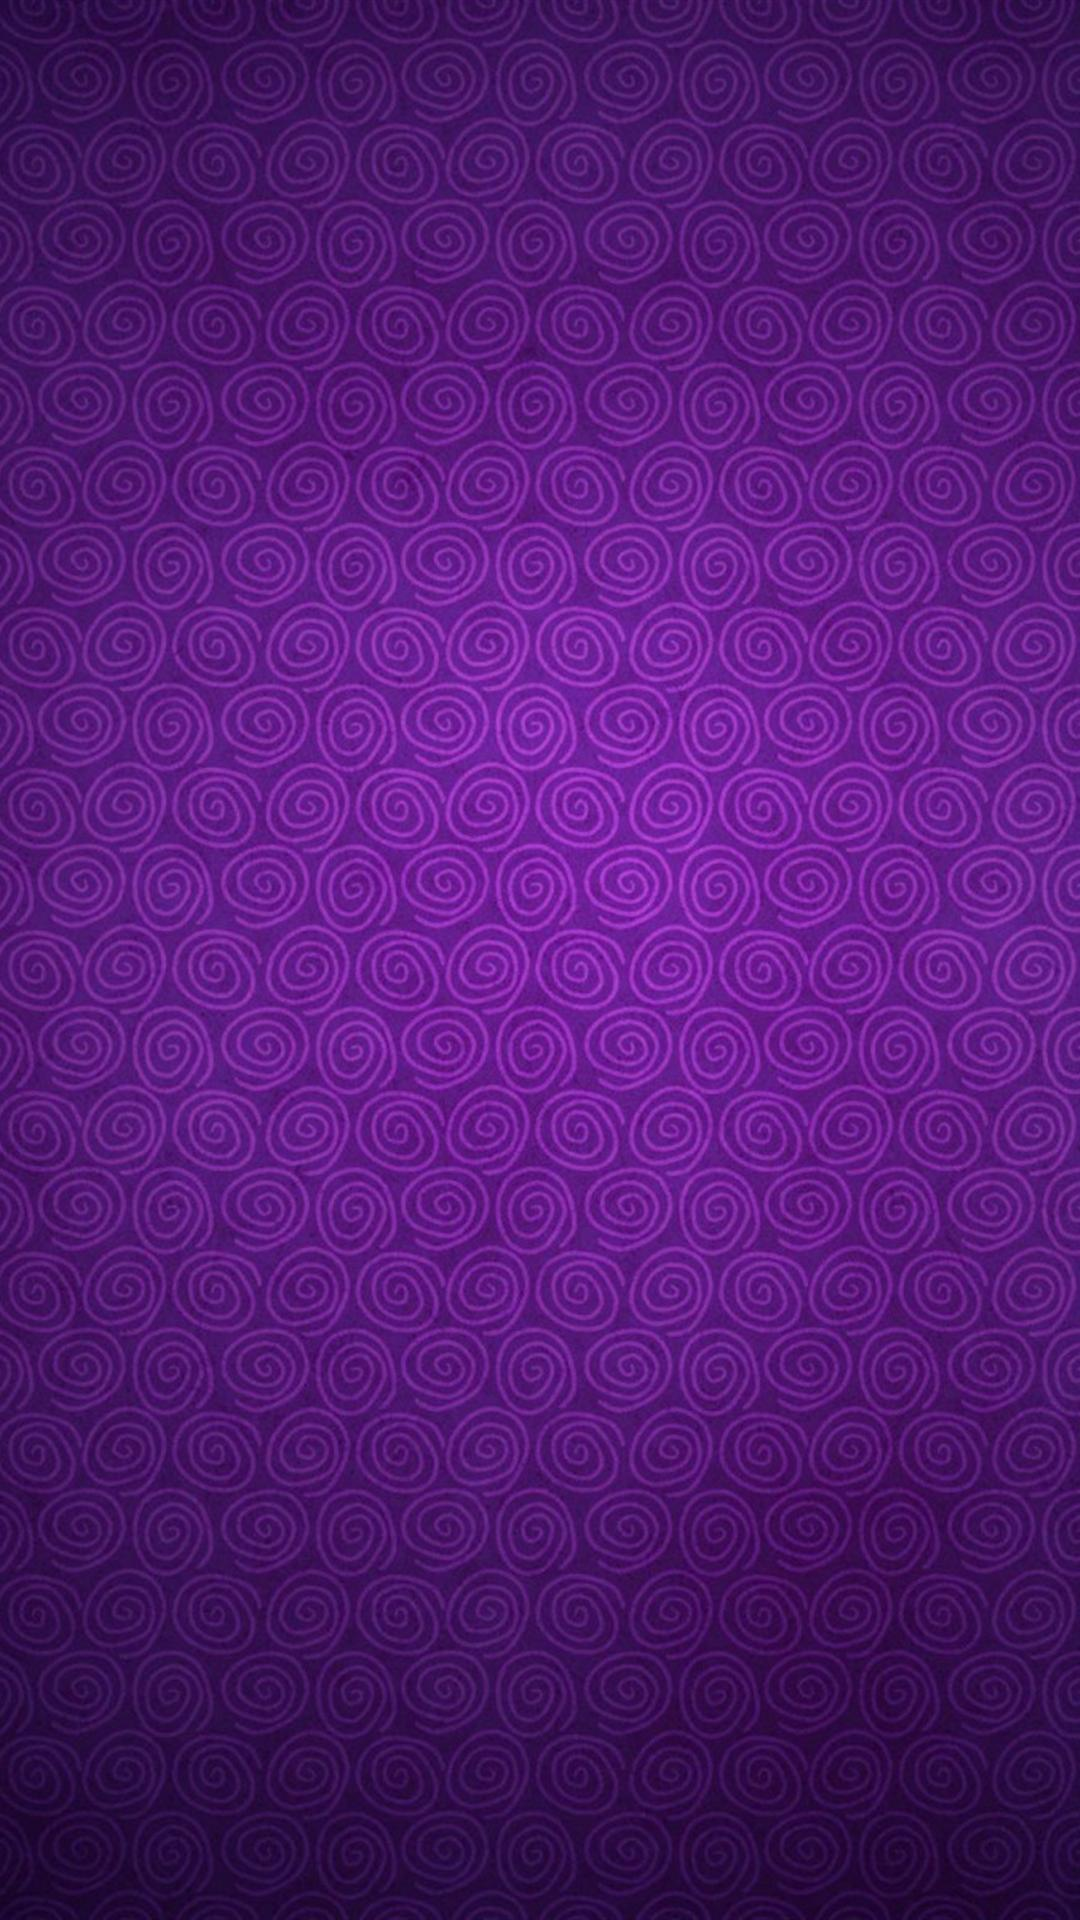 plus hd spinning twisting dark purple iphone 6 plus wallpapers 1080x1920